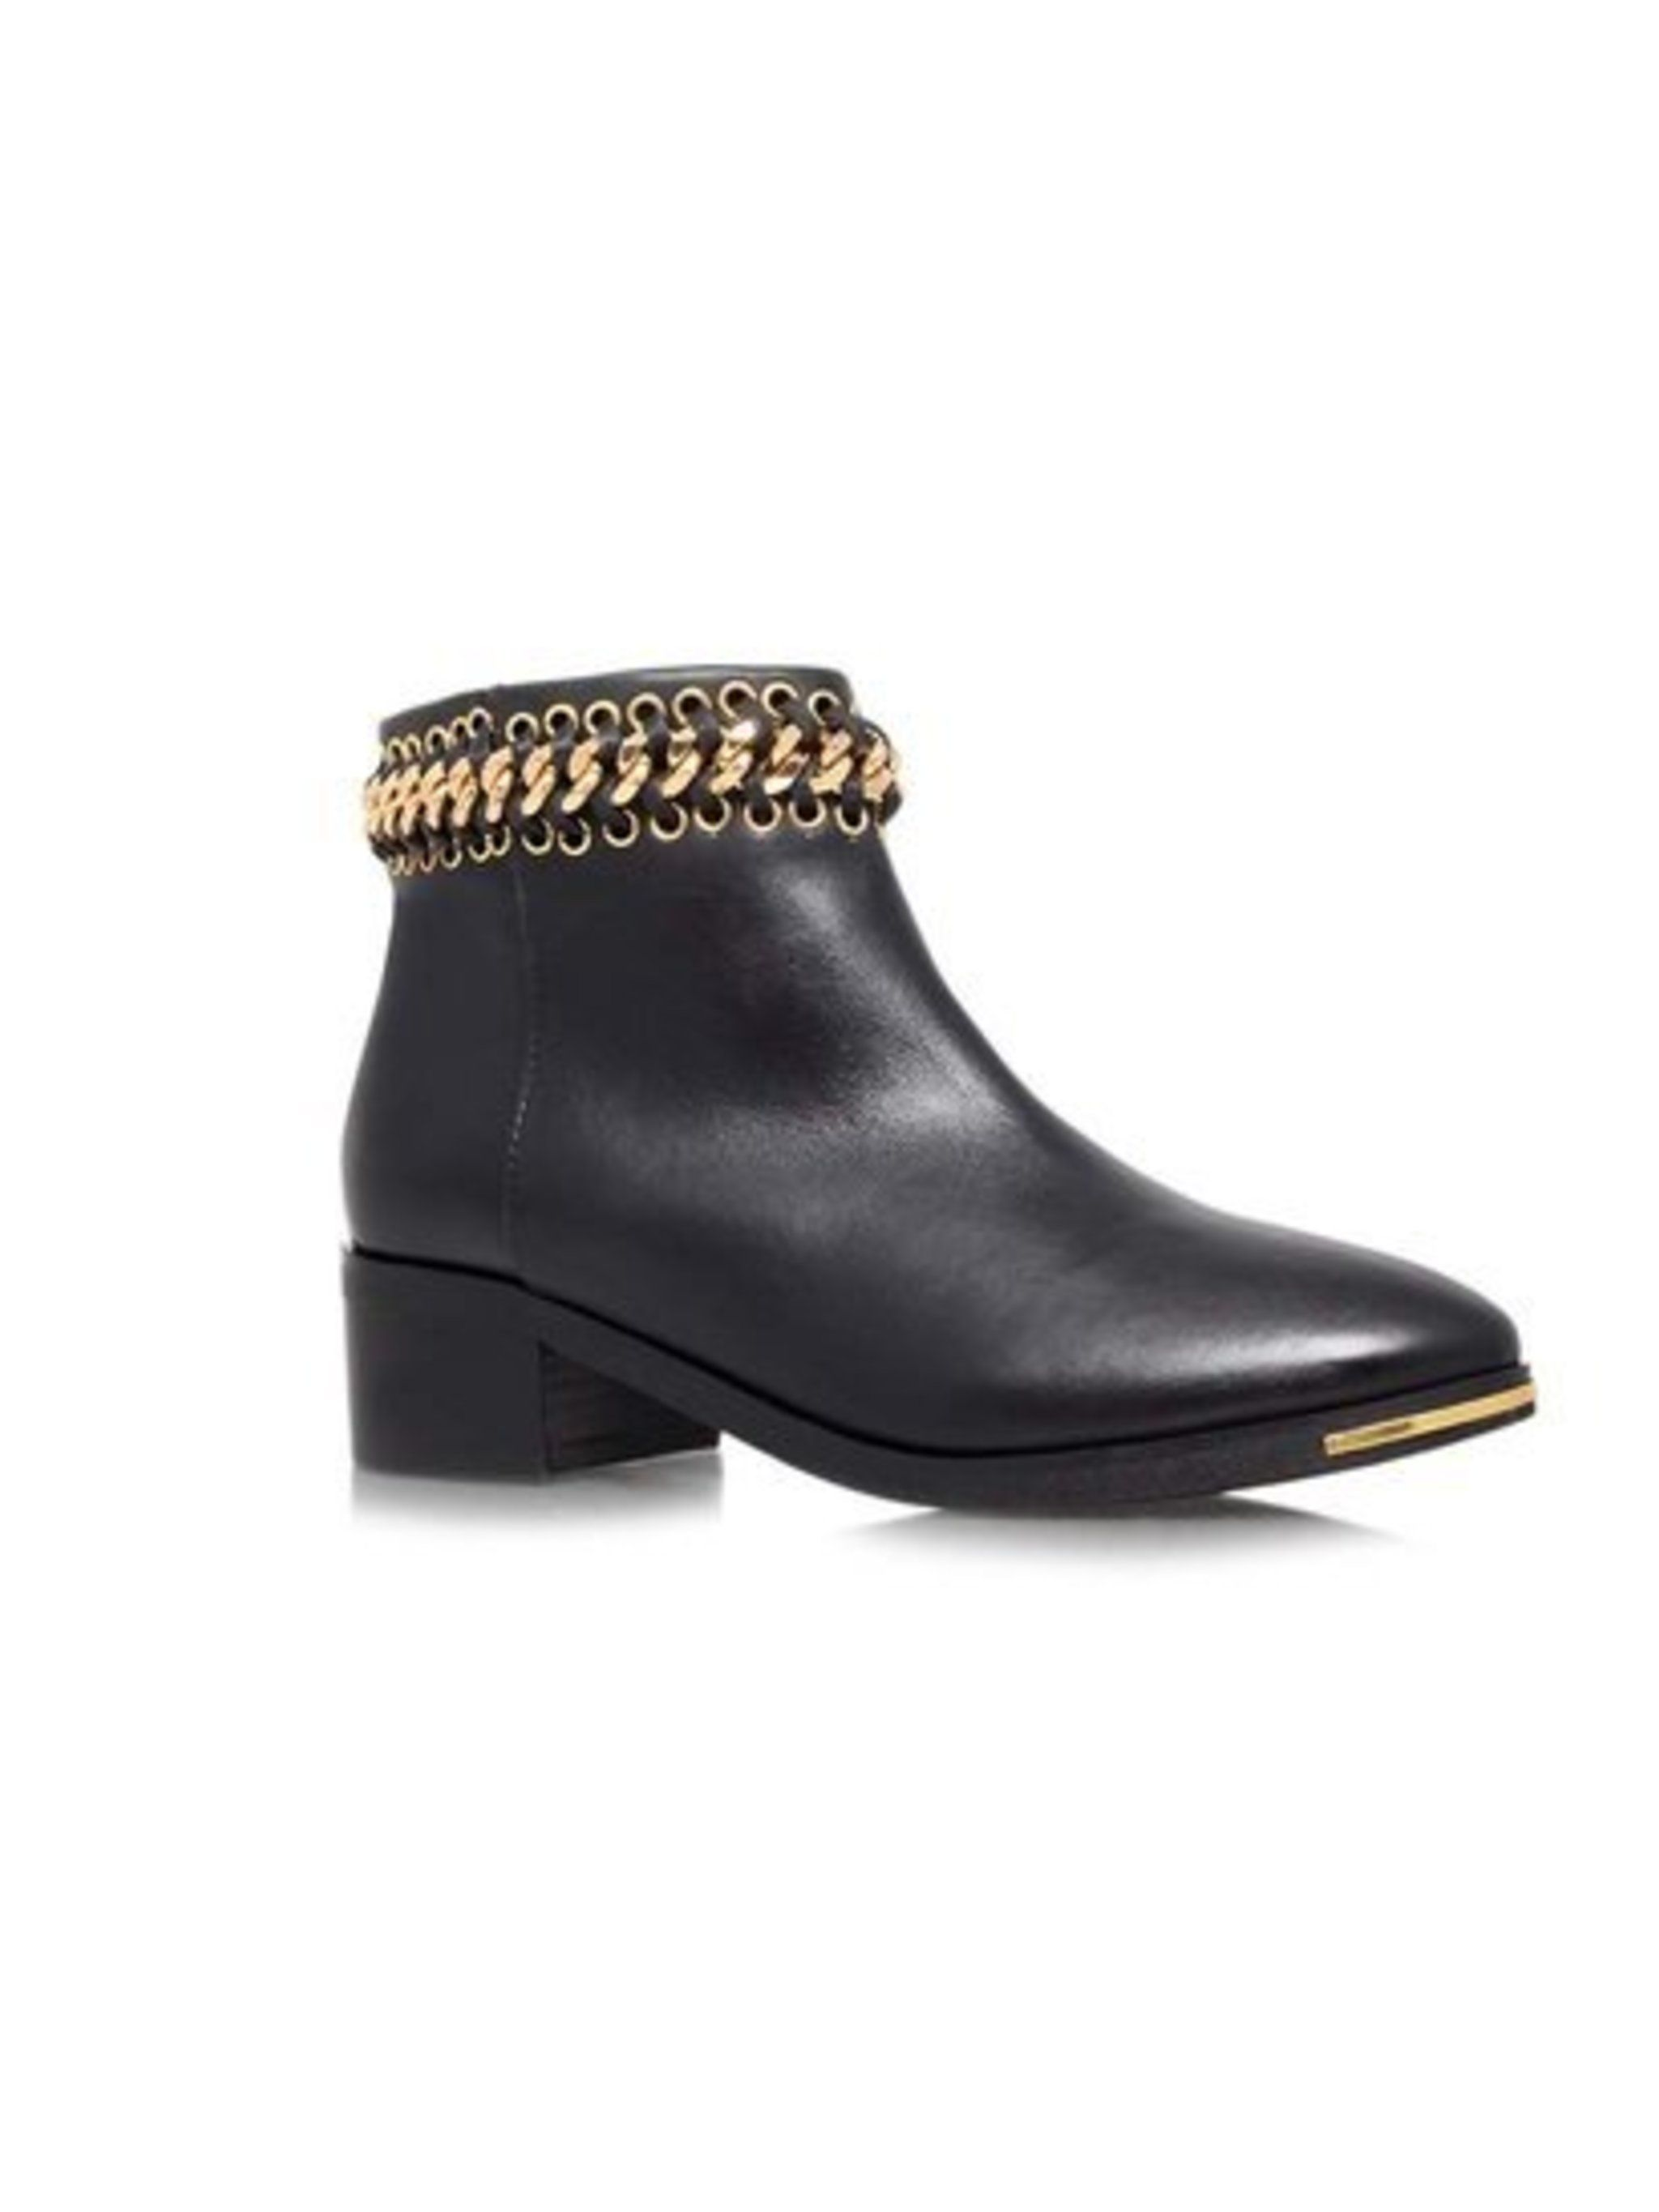 Chain Gang. Leather boots, £160 from Kurt Geiger